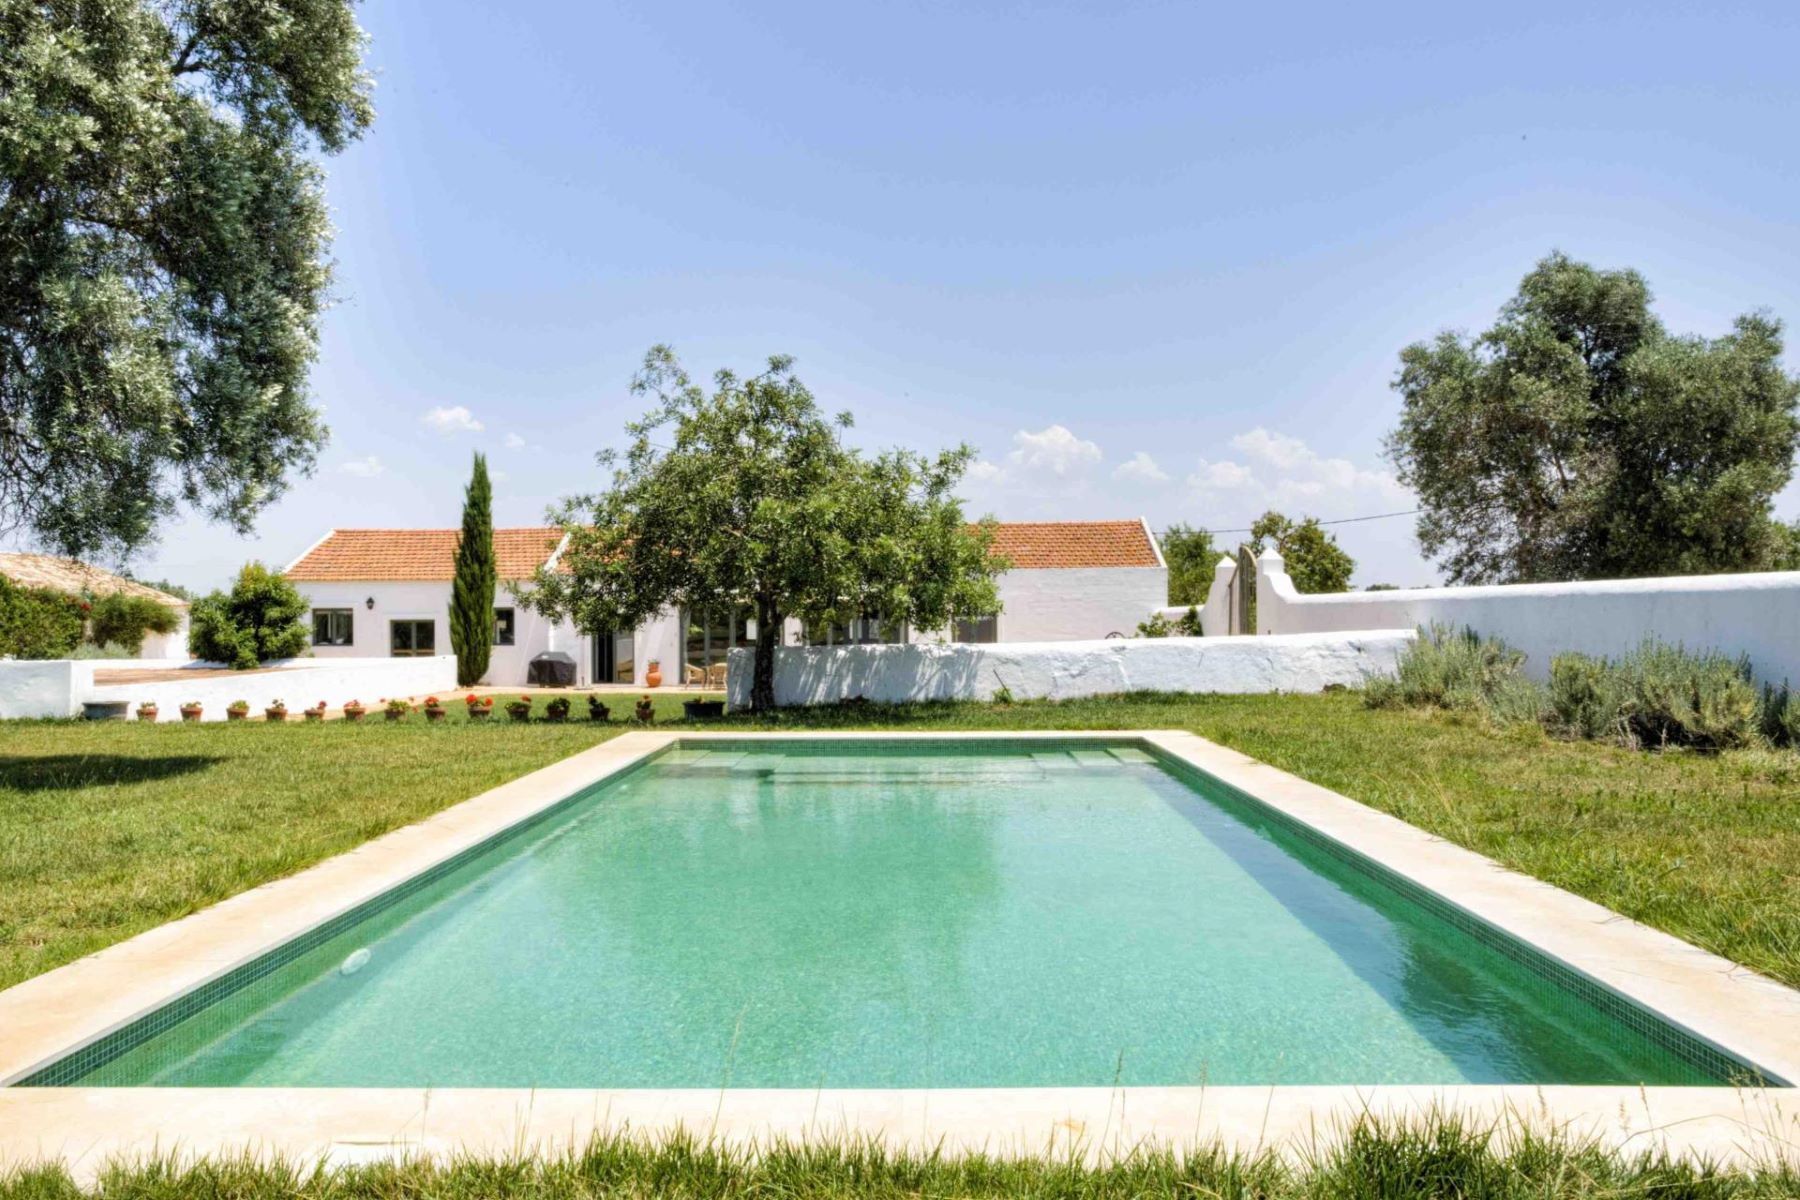 Farm / Ranch / Plantation for Sale at Country Estate, 10 bedrooms, for Sale Lagoa, Algarve, Portugal